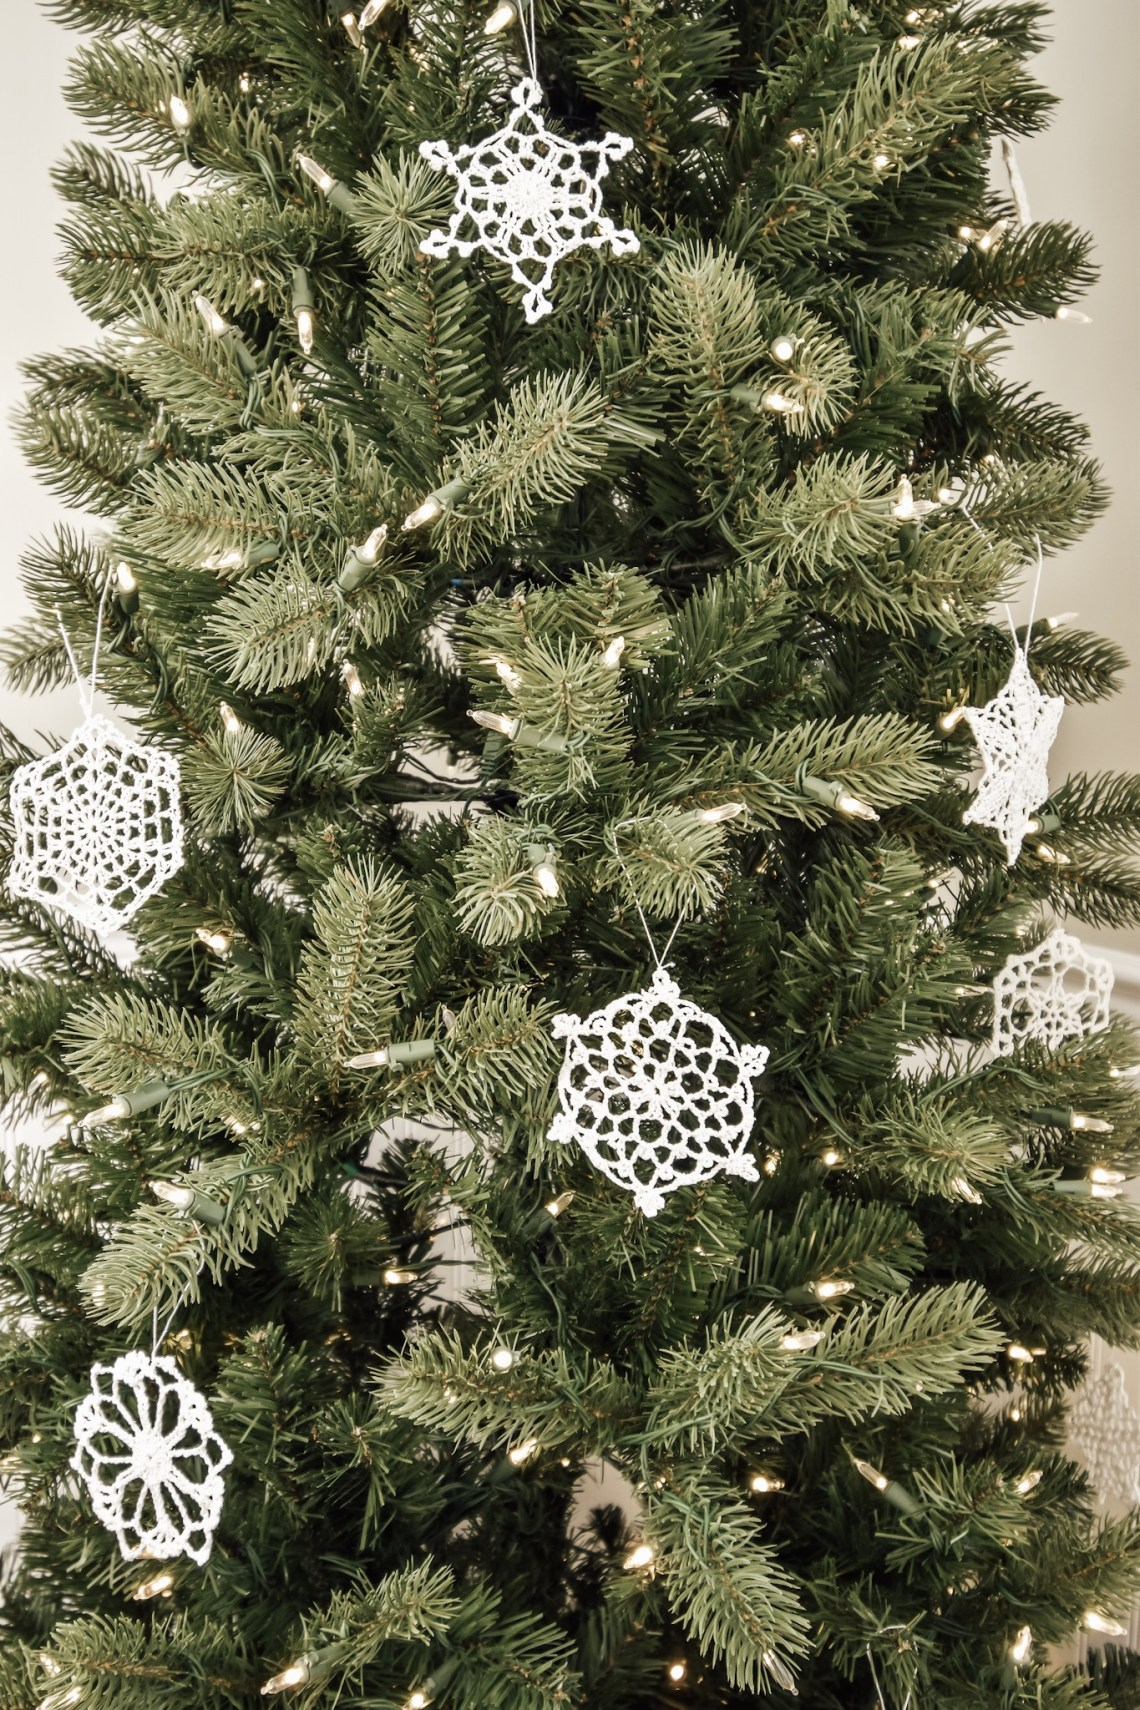 Decorating Our King of Christmas Tree with Vintage Simplicity